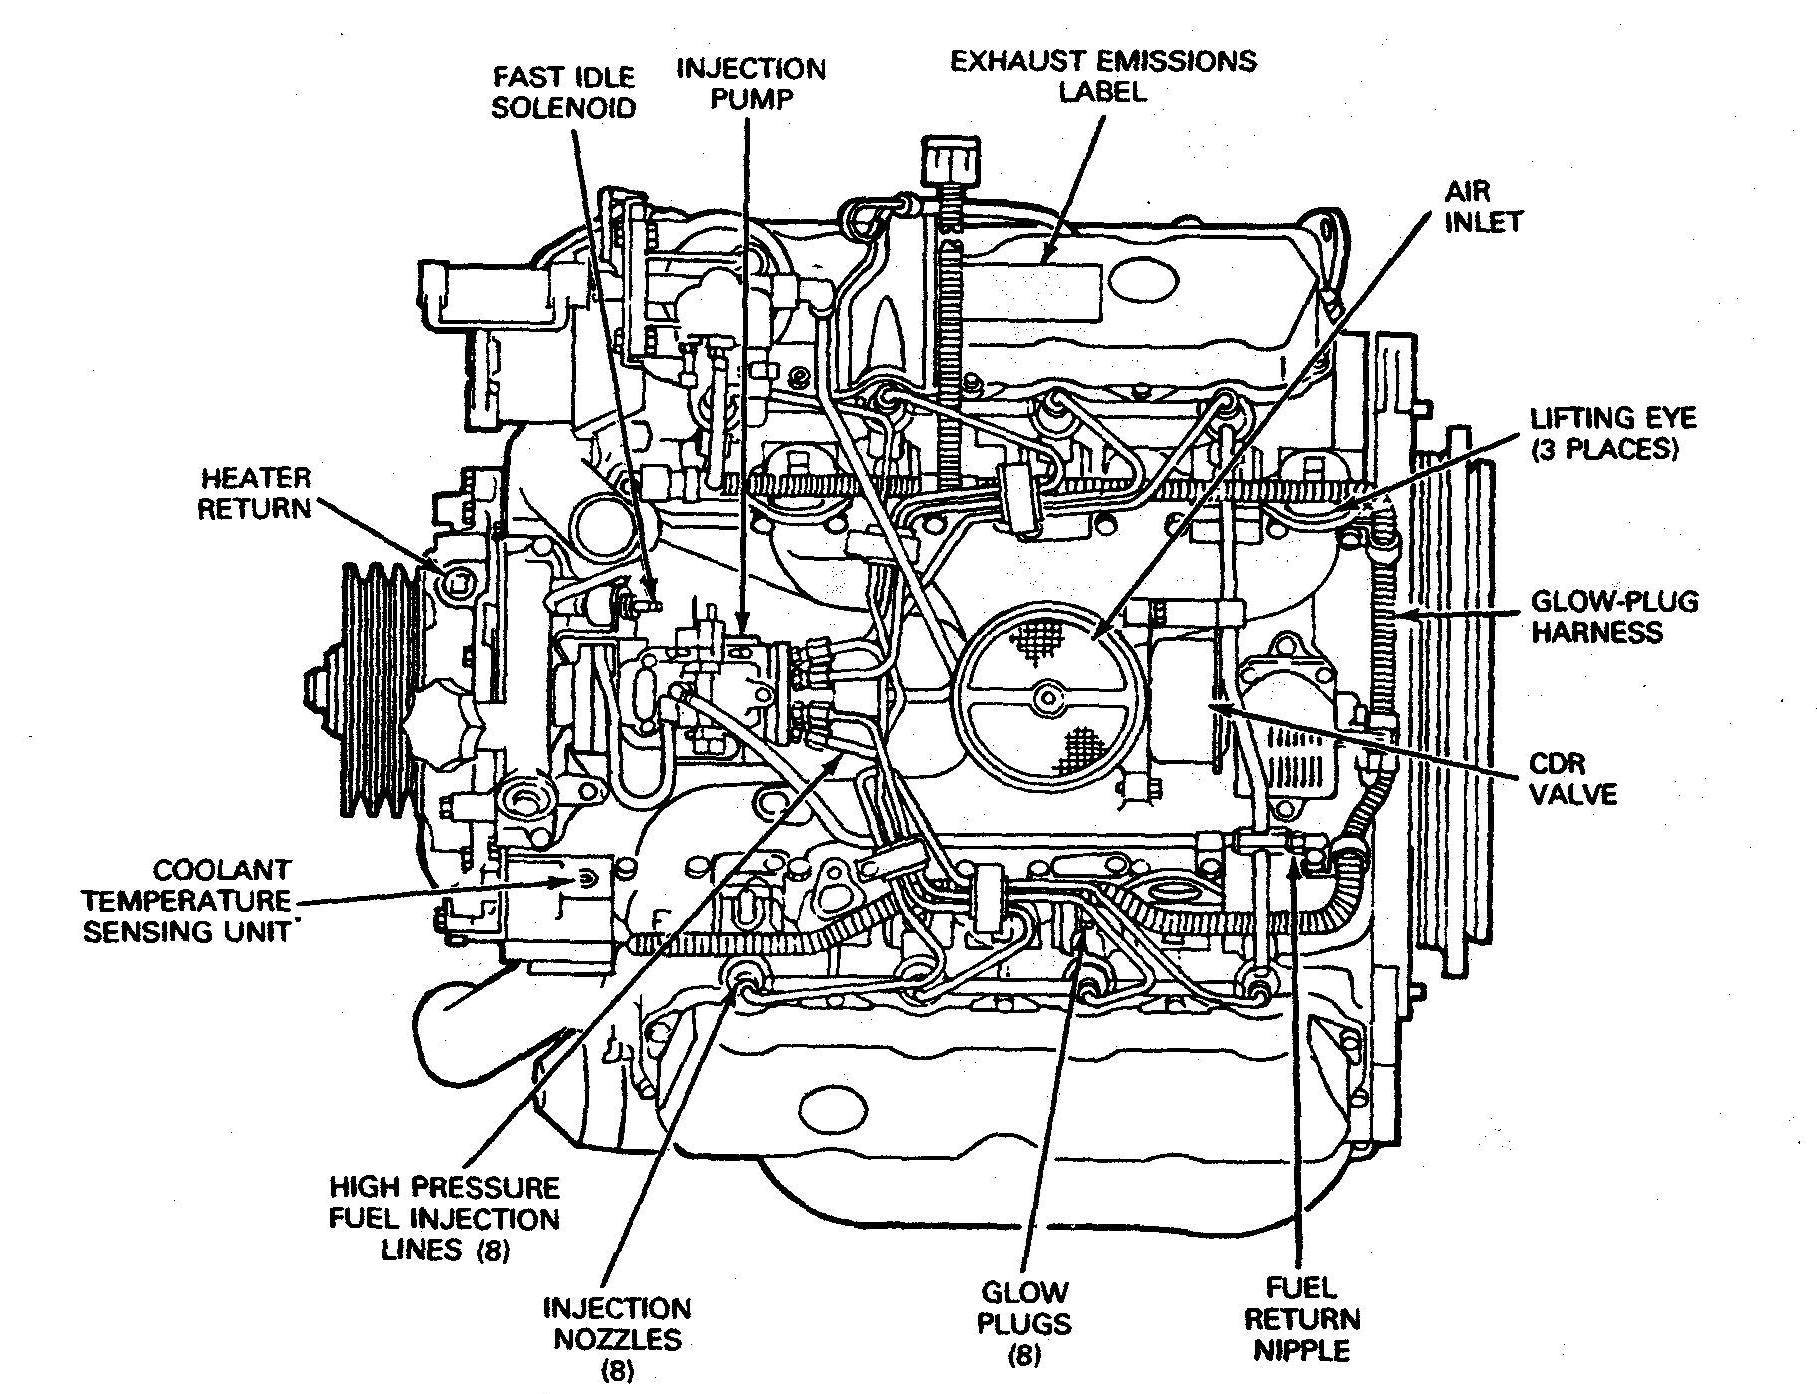 engine and jet drive v1 6 cat engine diagram